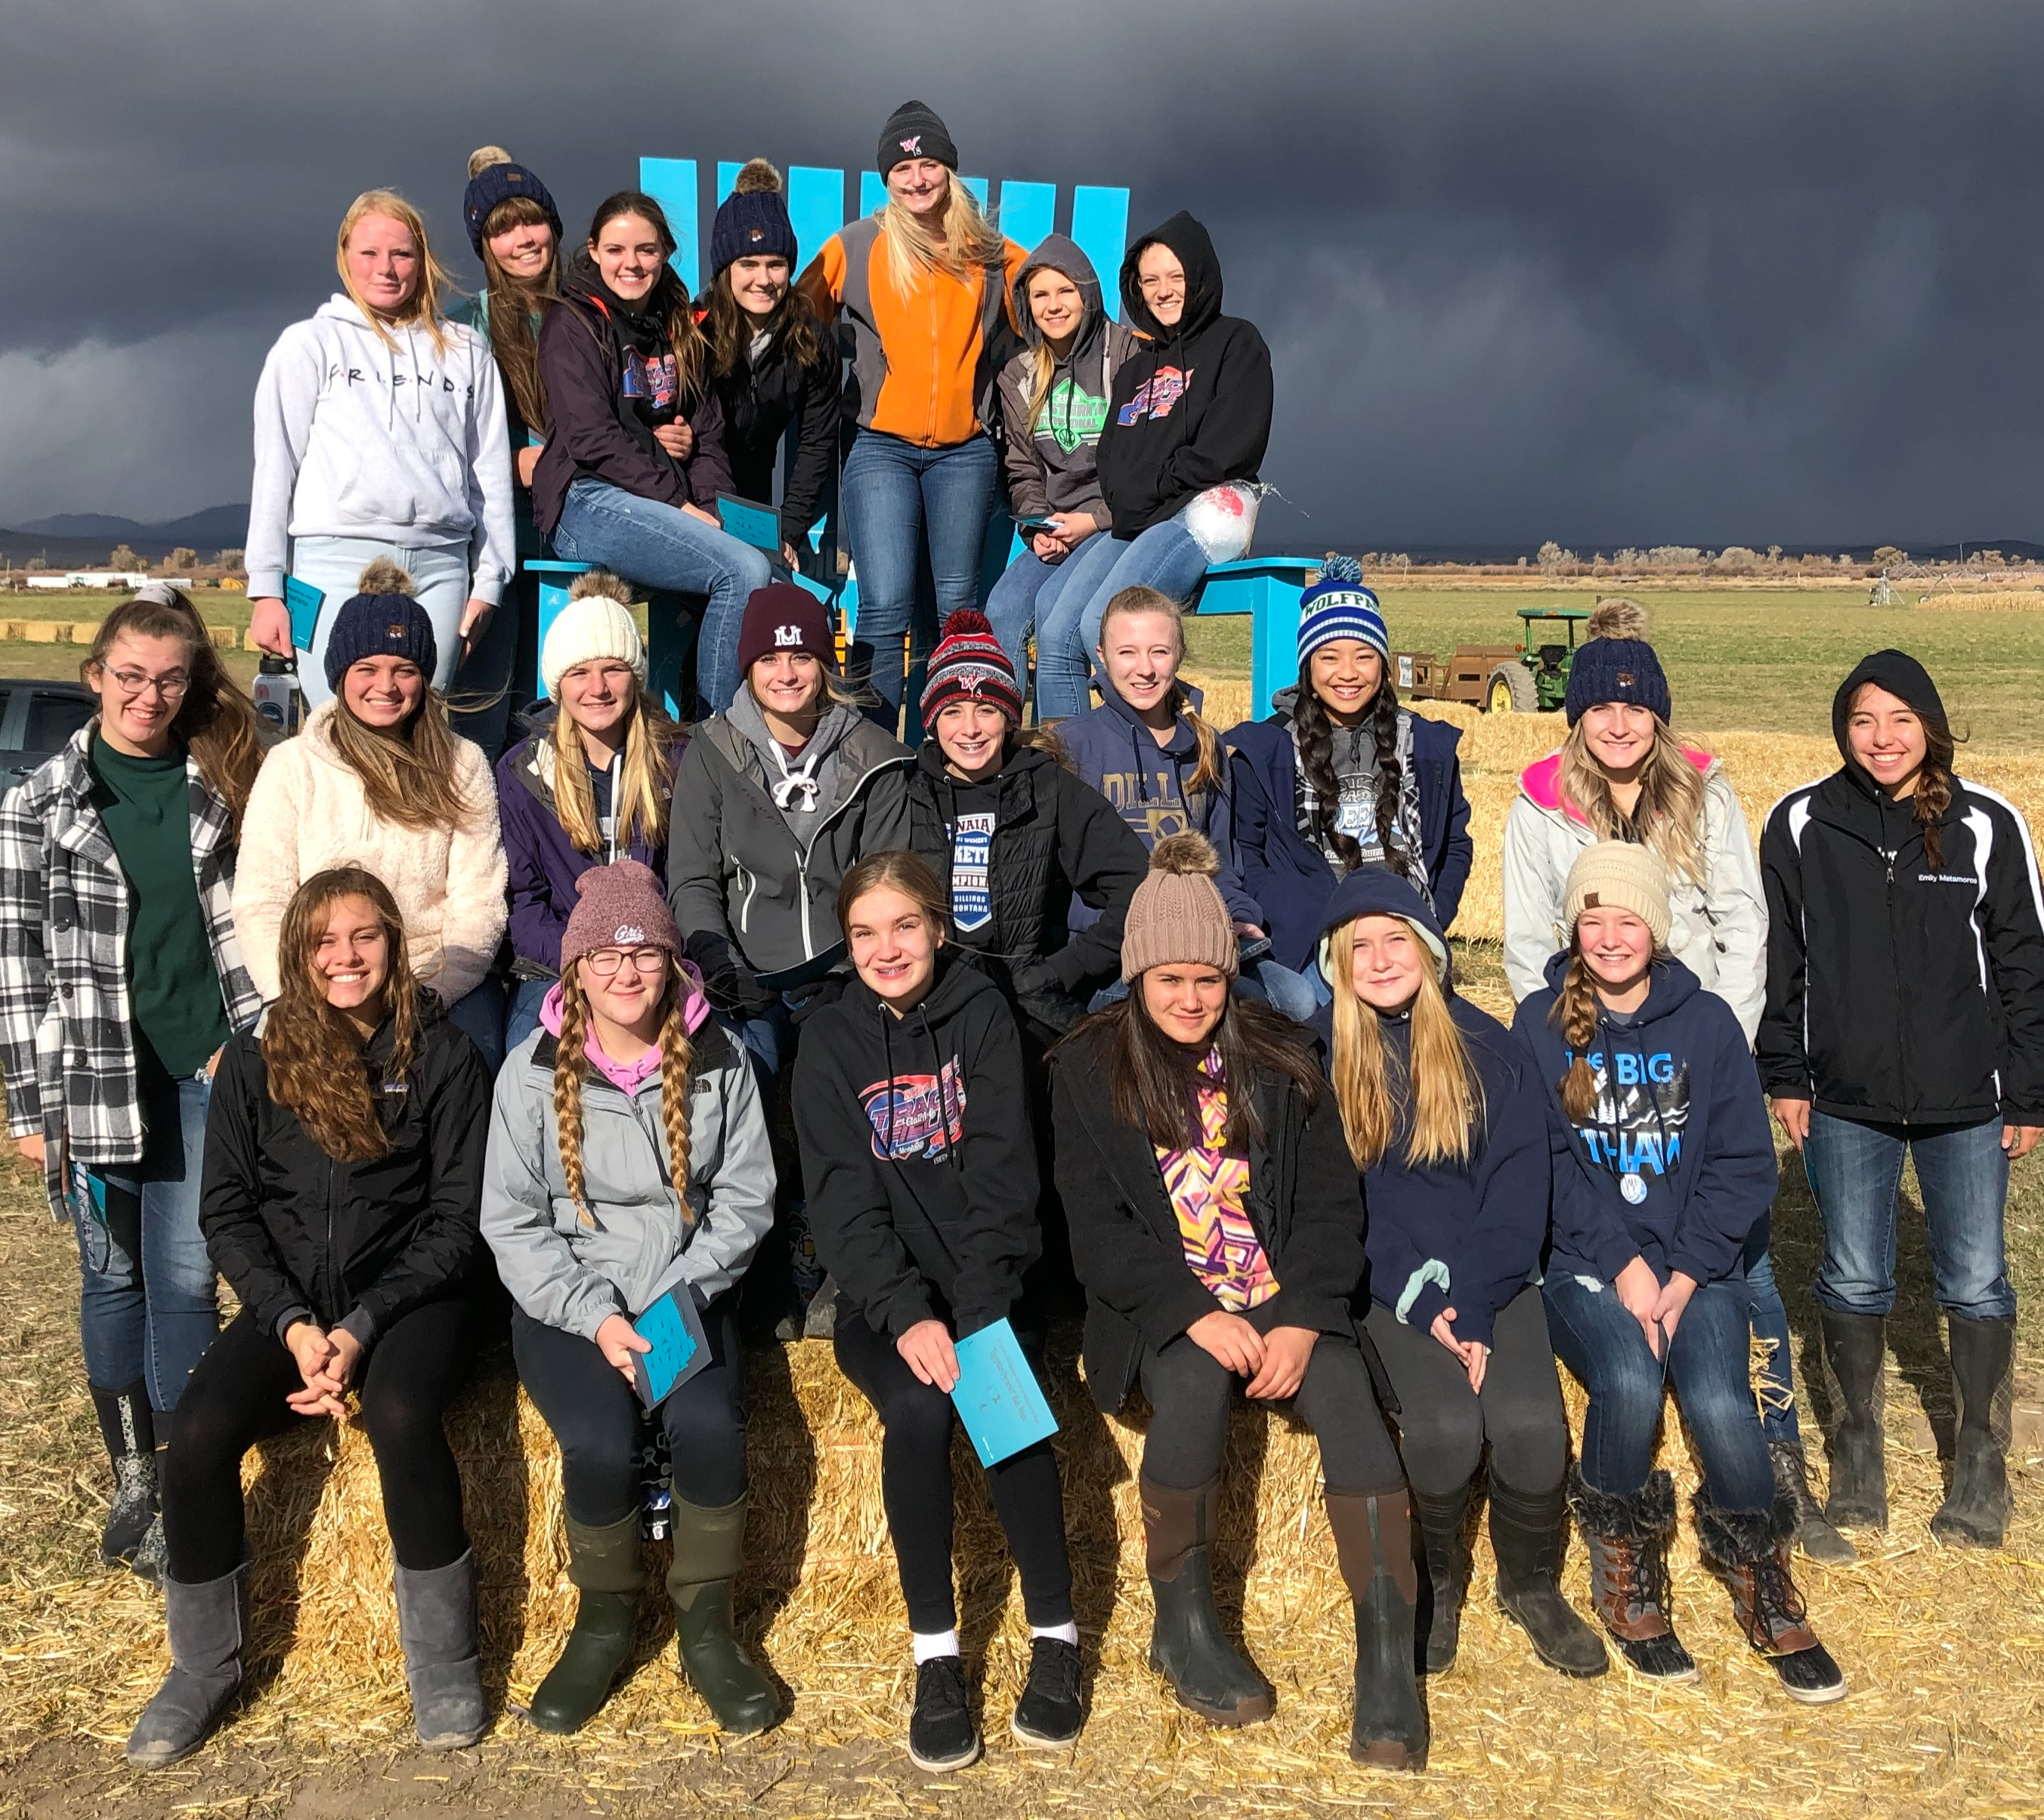 A photo of the volleyball team at the Beaverhead Maze in October 2019